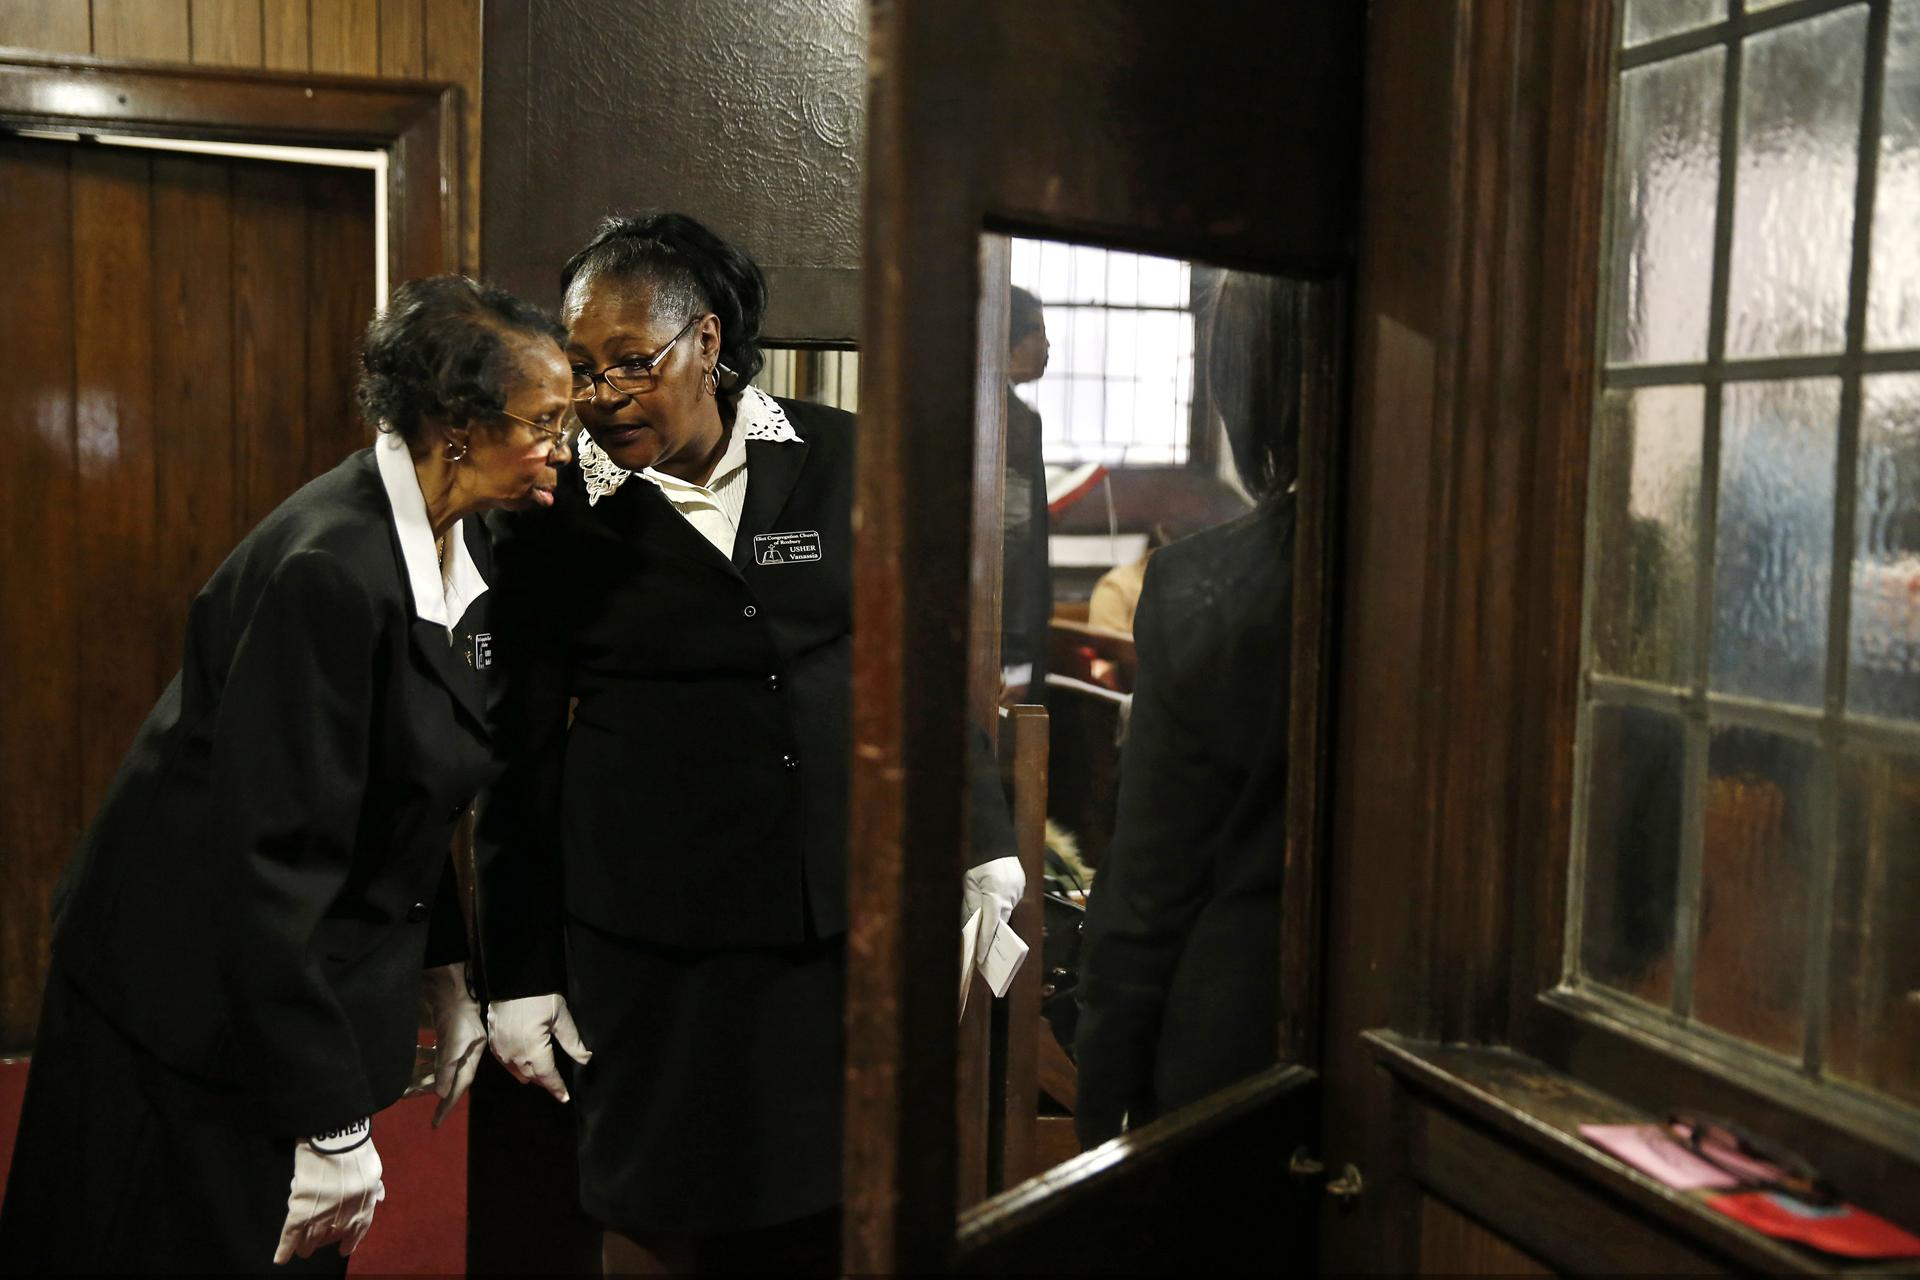 Ushers whispered to each other at the Eliot Congregational Church of Roxbury.